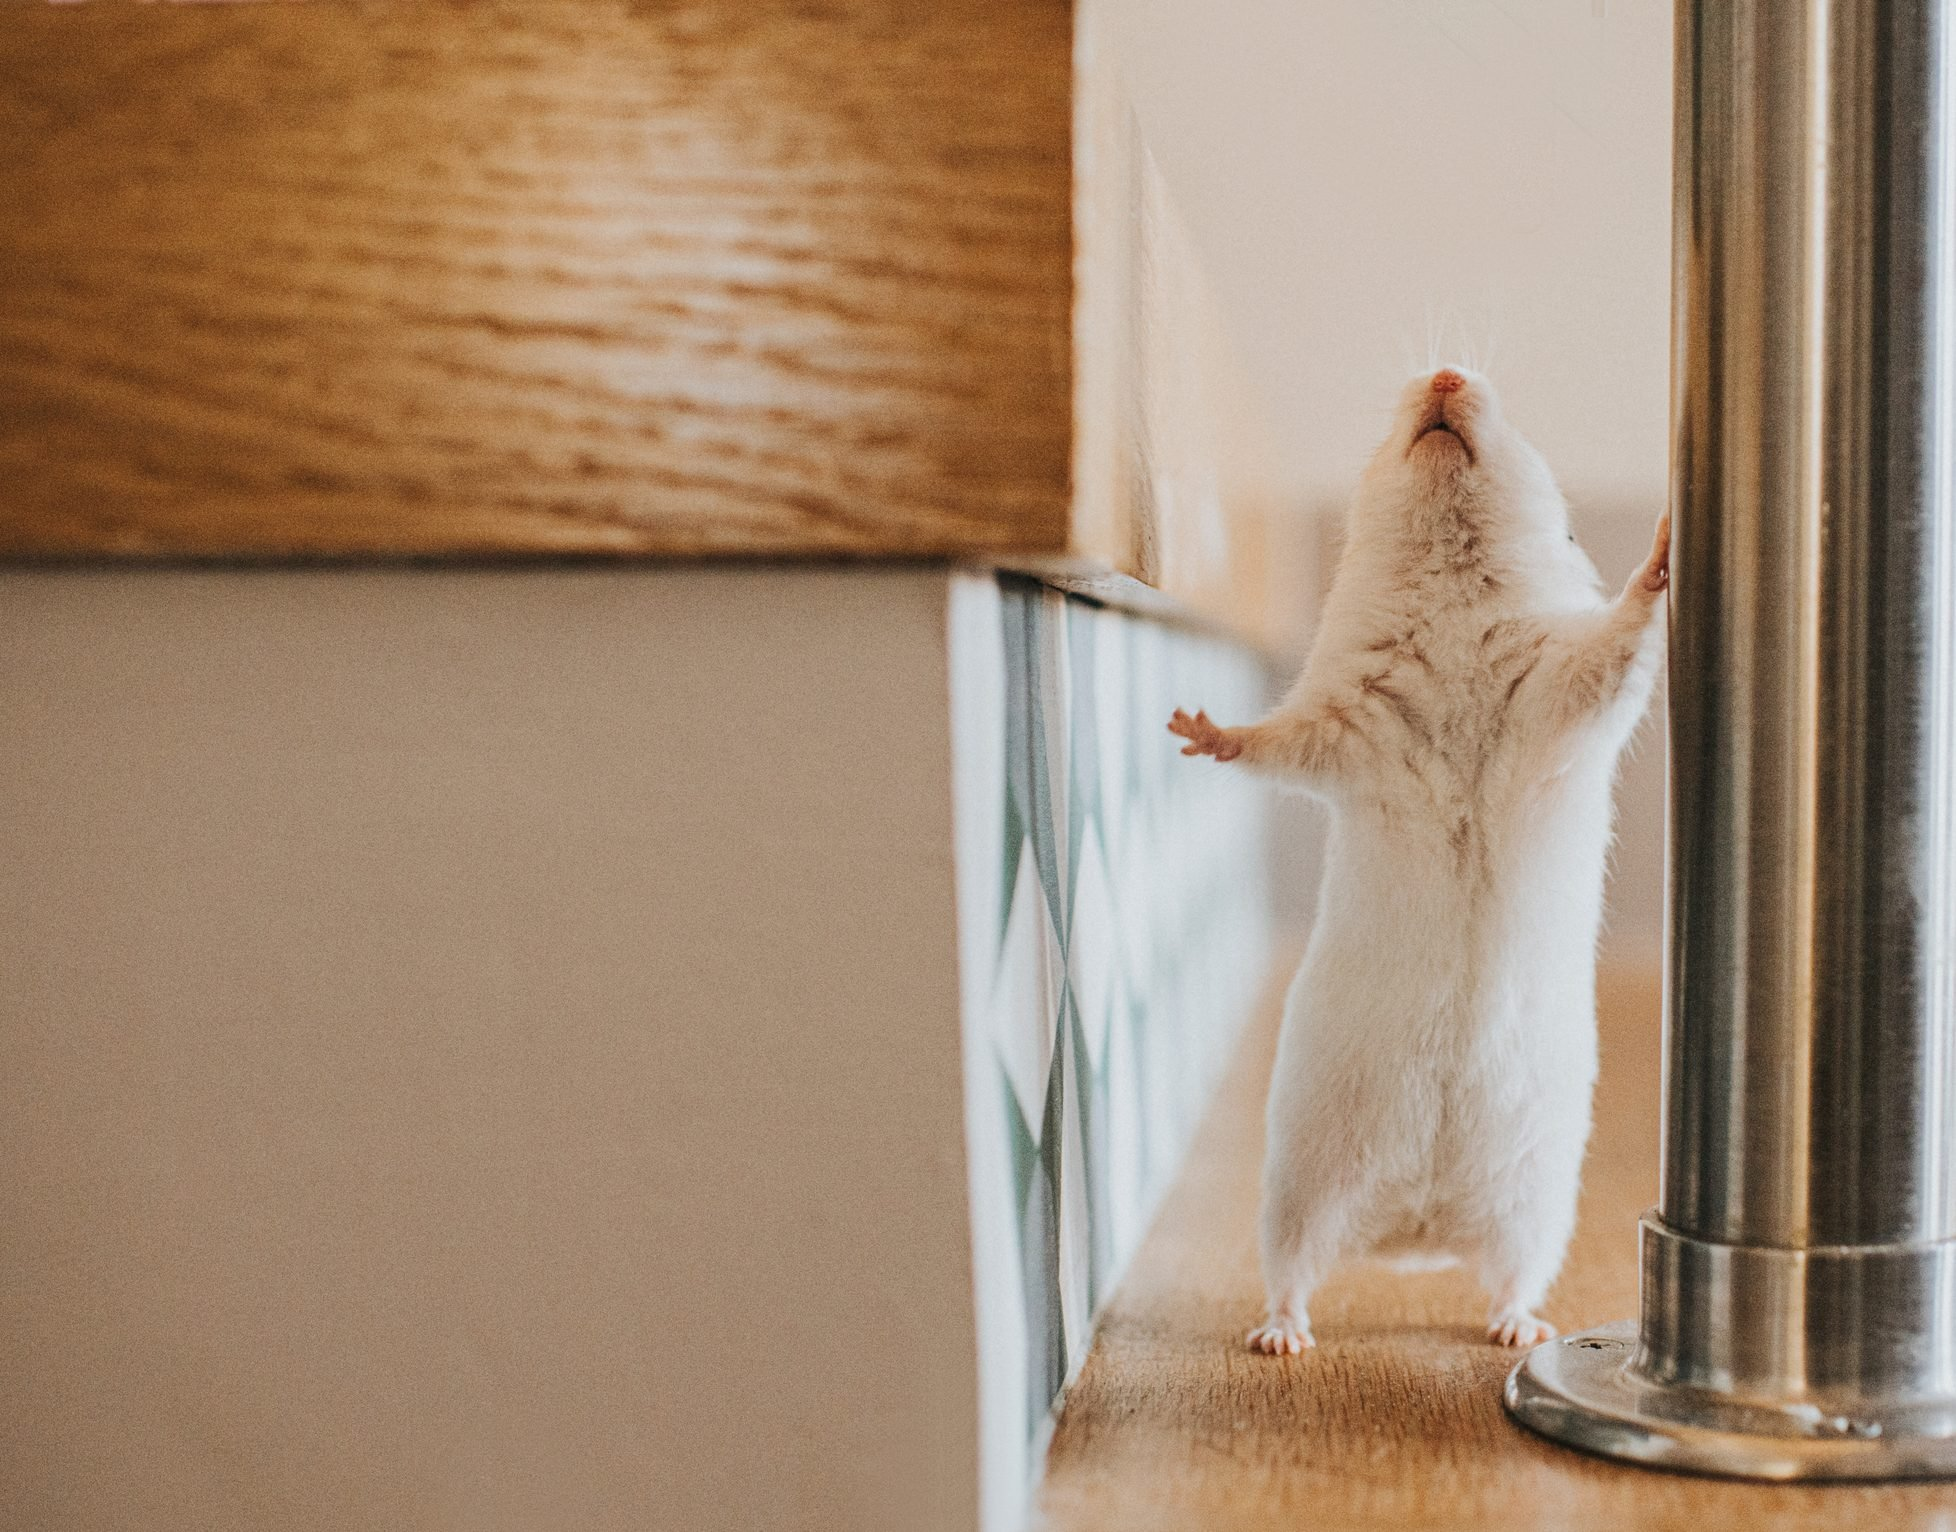 White Syrian Hamster stands beside a Bannister on a staircase and looks up